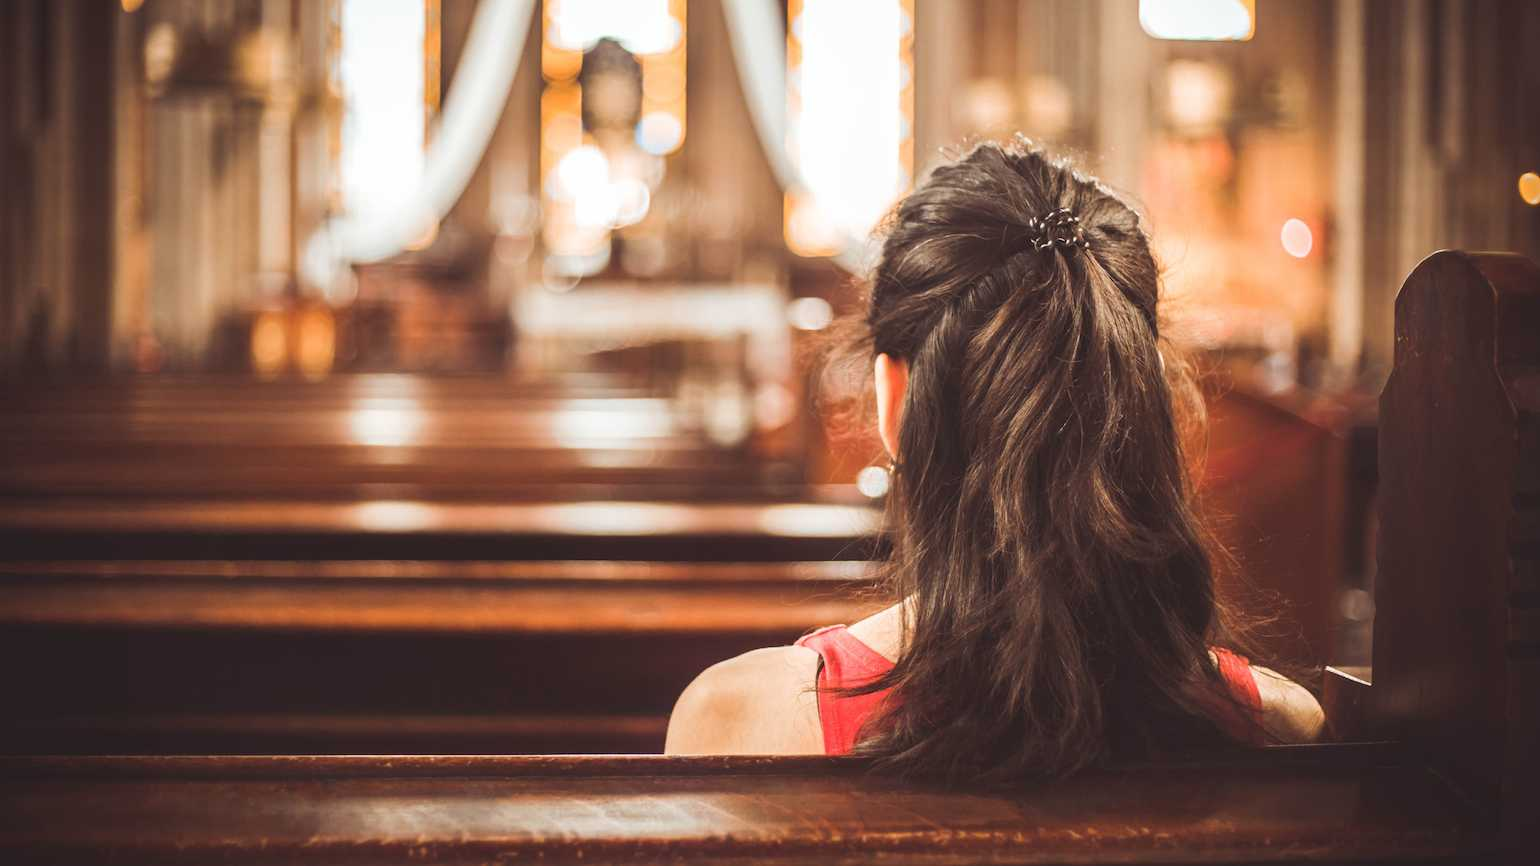 How did you find your favorite place to worship?